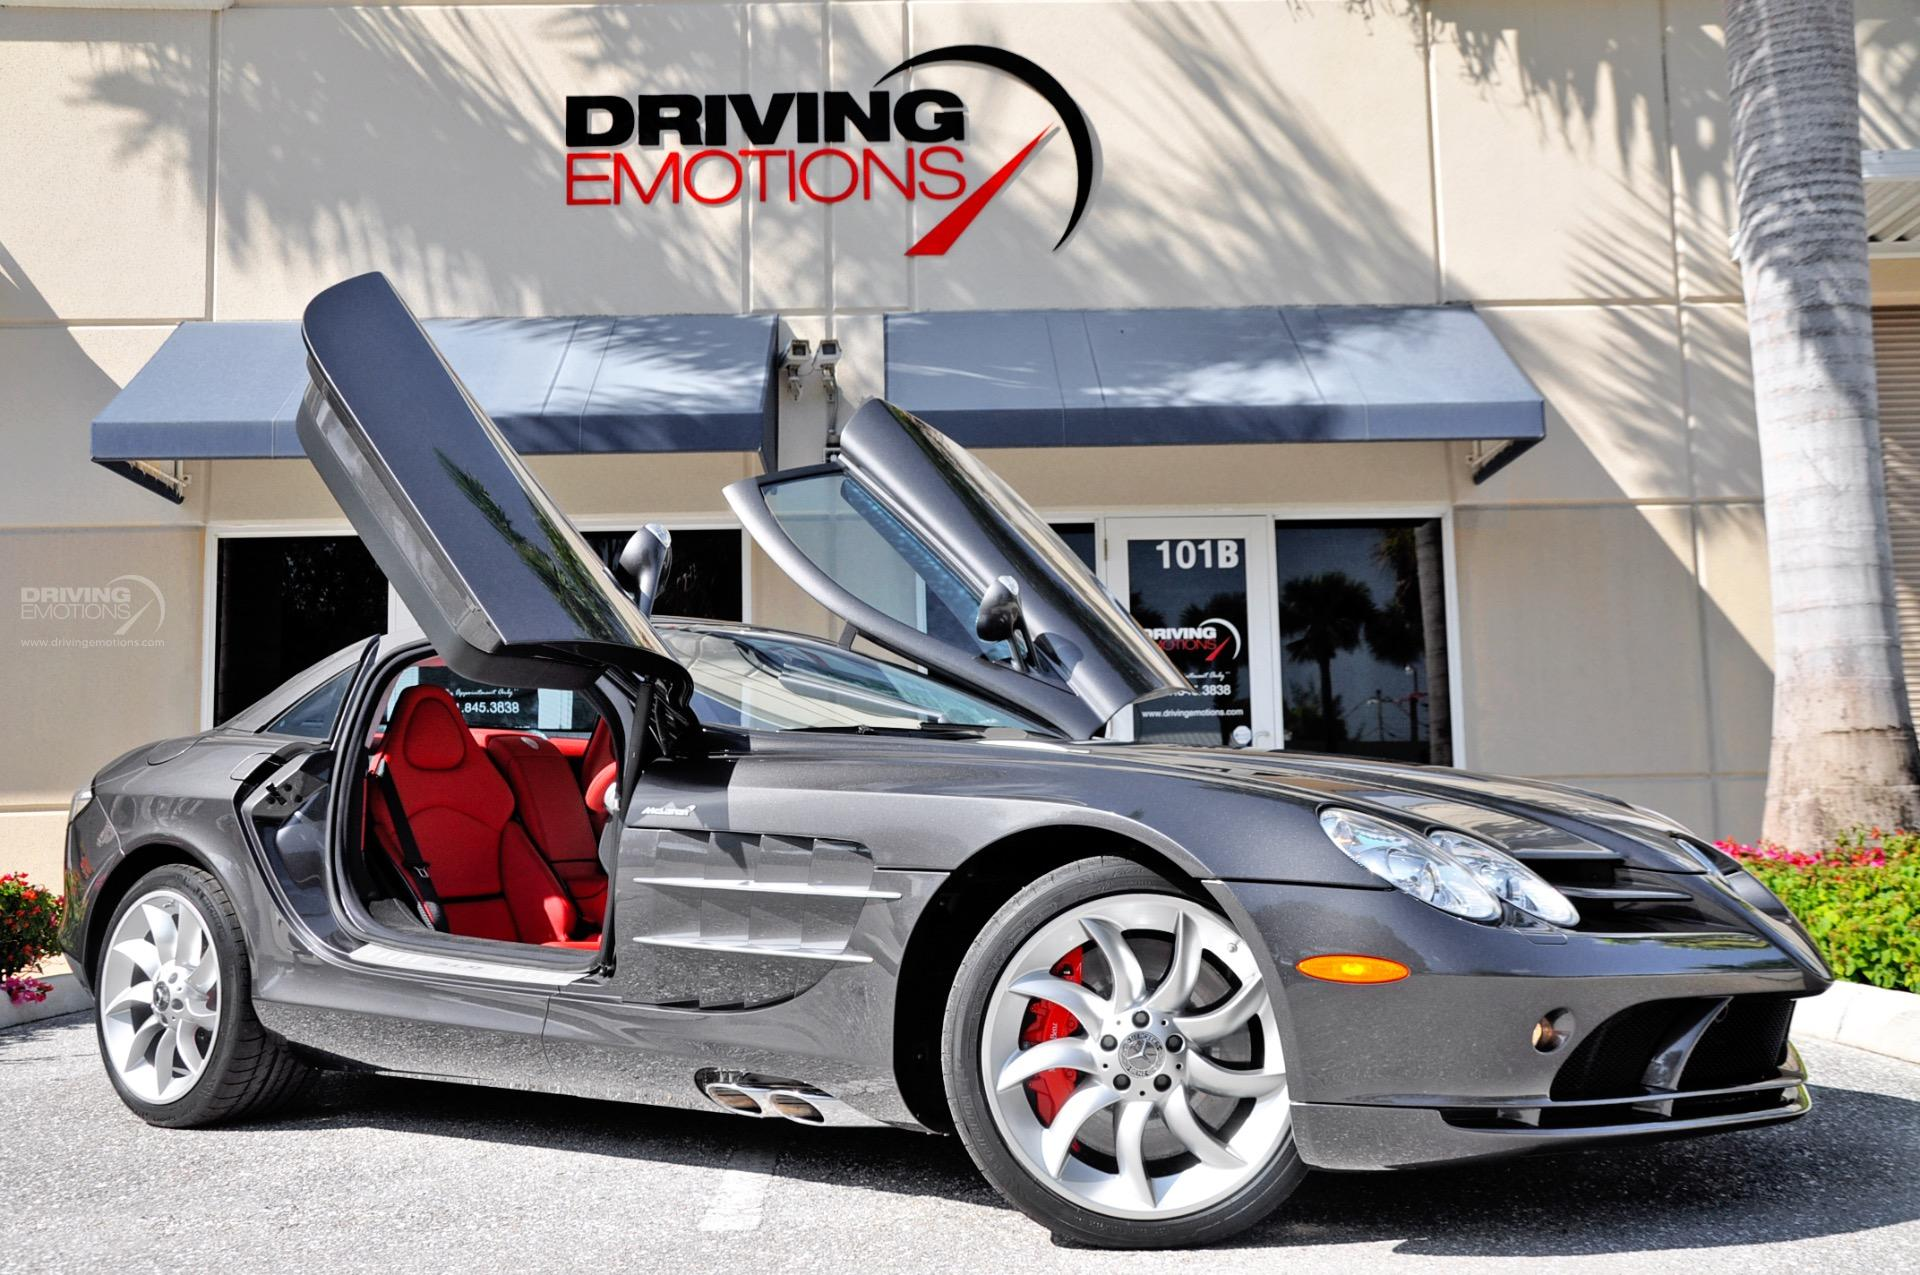 2006 Mercedes Benz Slr Mclaren Slr Mclaren Stock 5833 For Sale